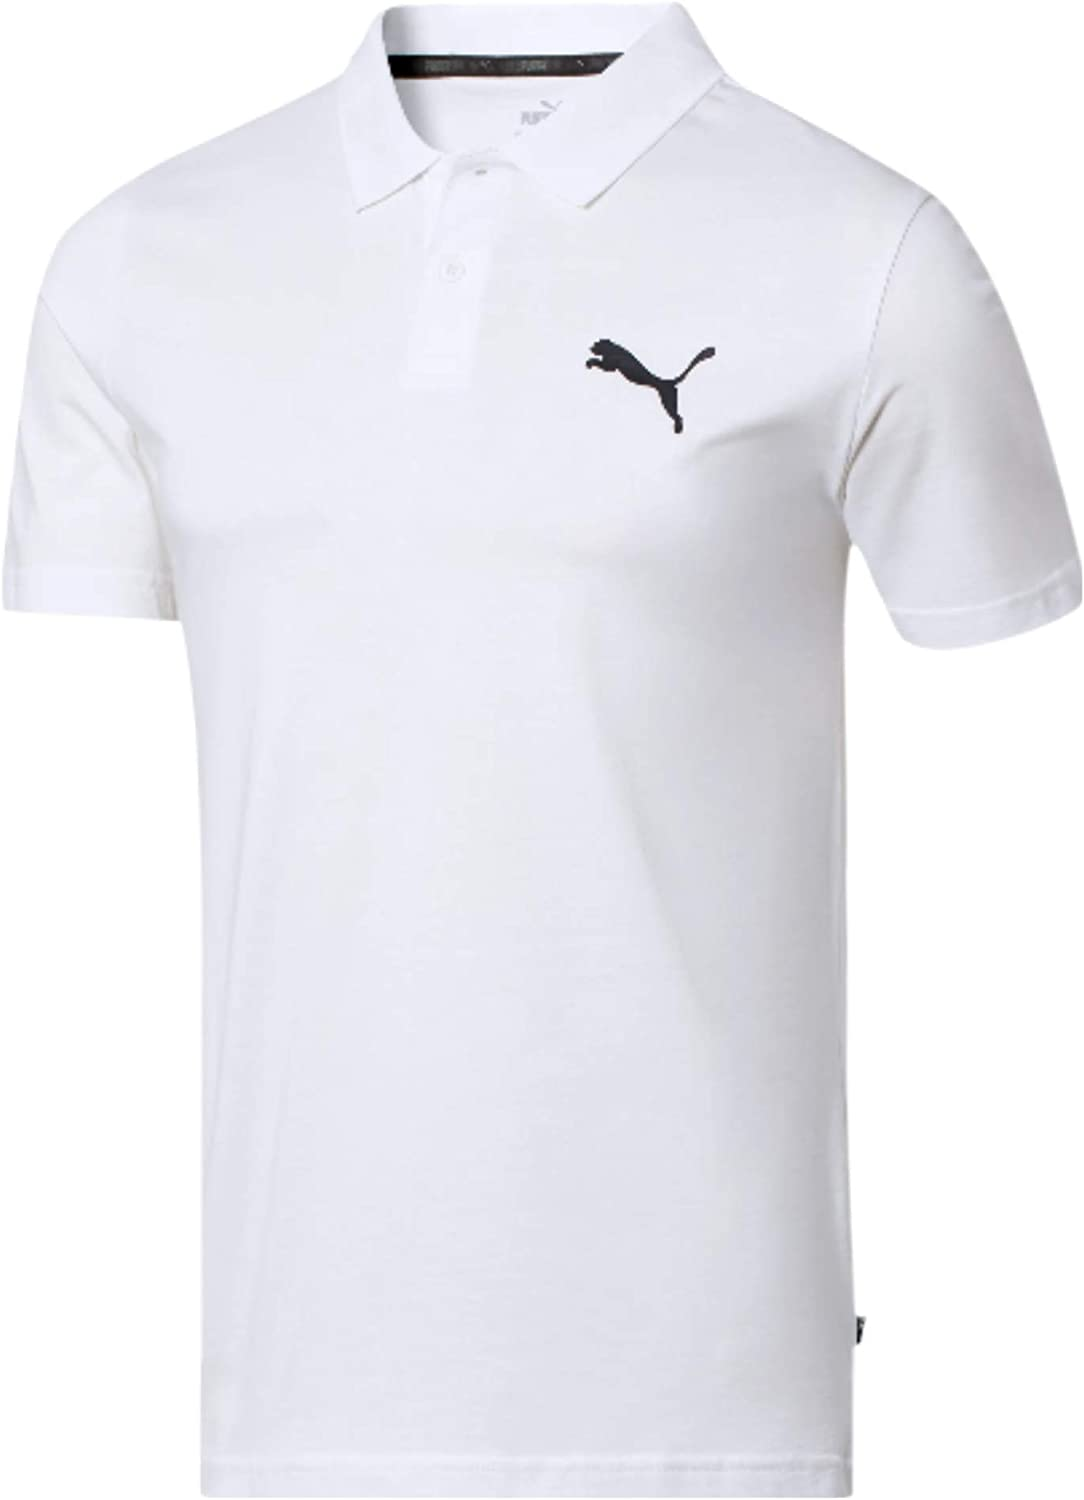 PUMA Men's Ess Direct store Jersey Shirt Polo Special price for a limited time